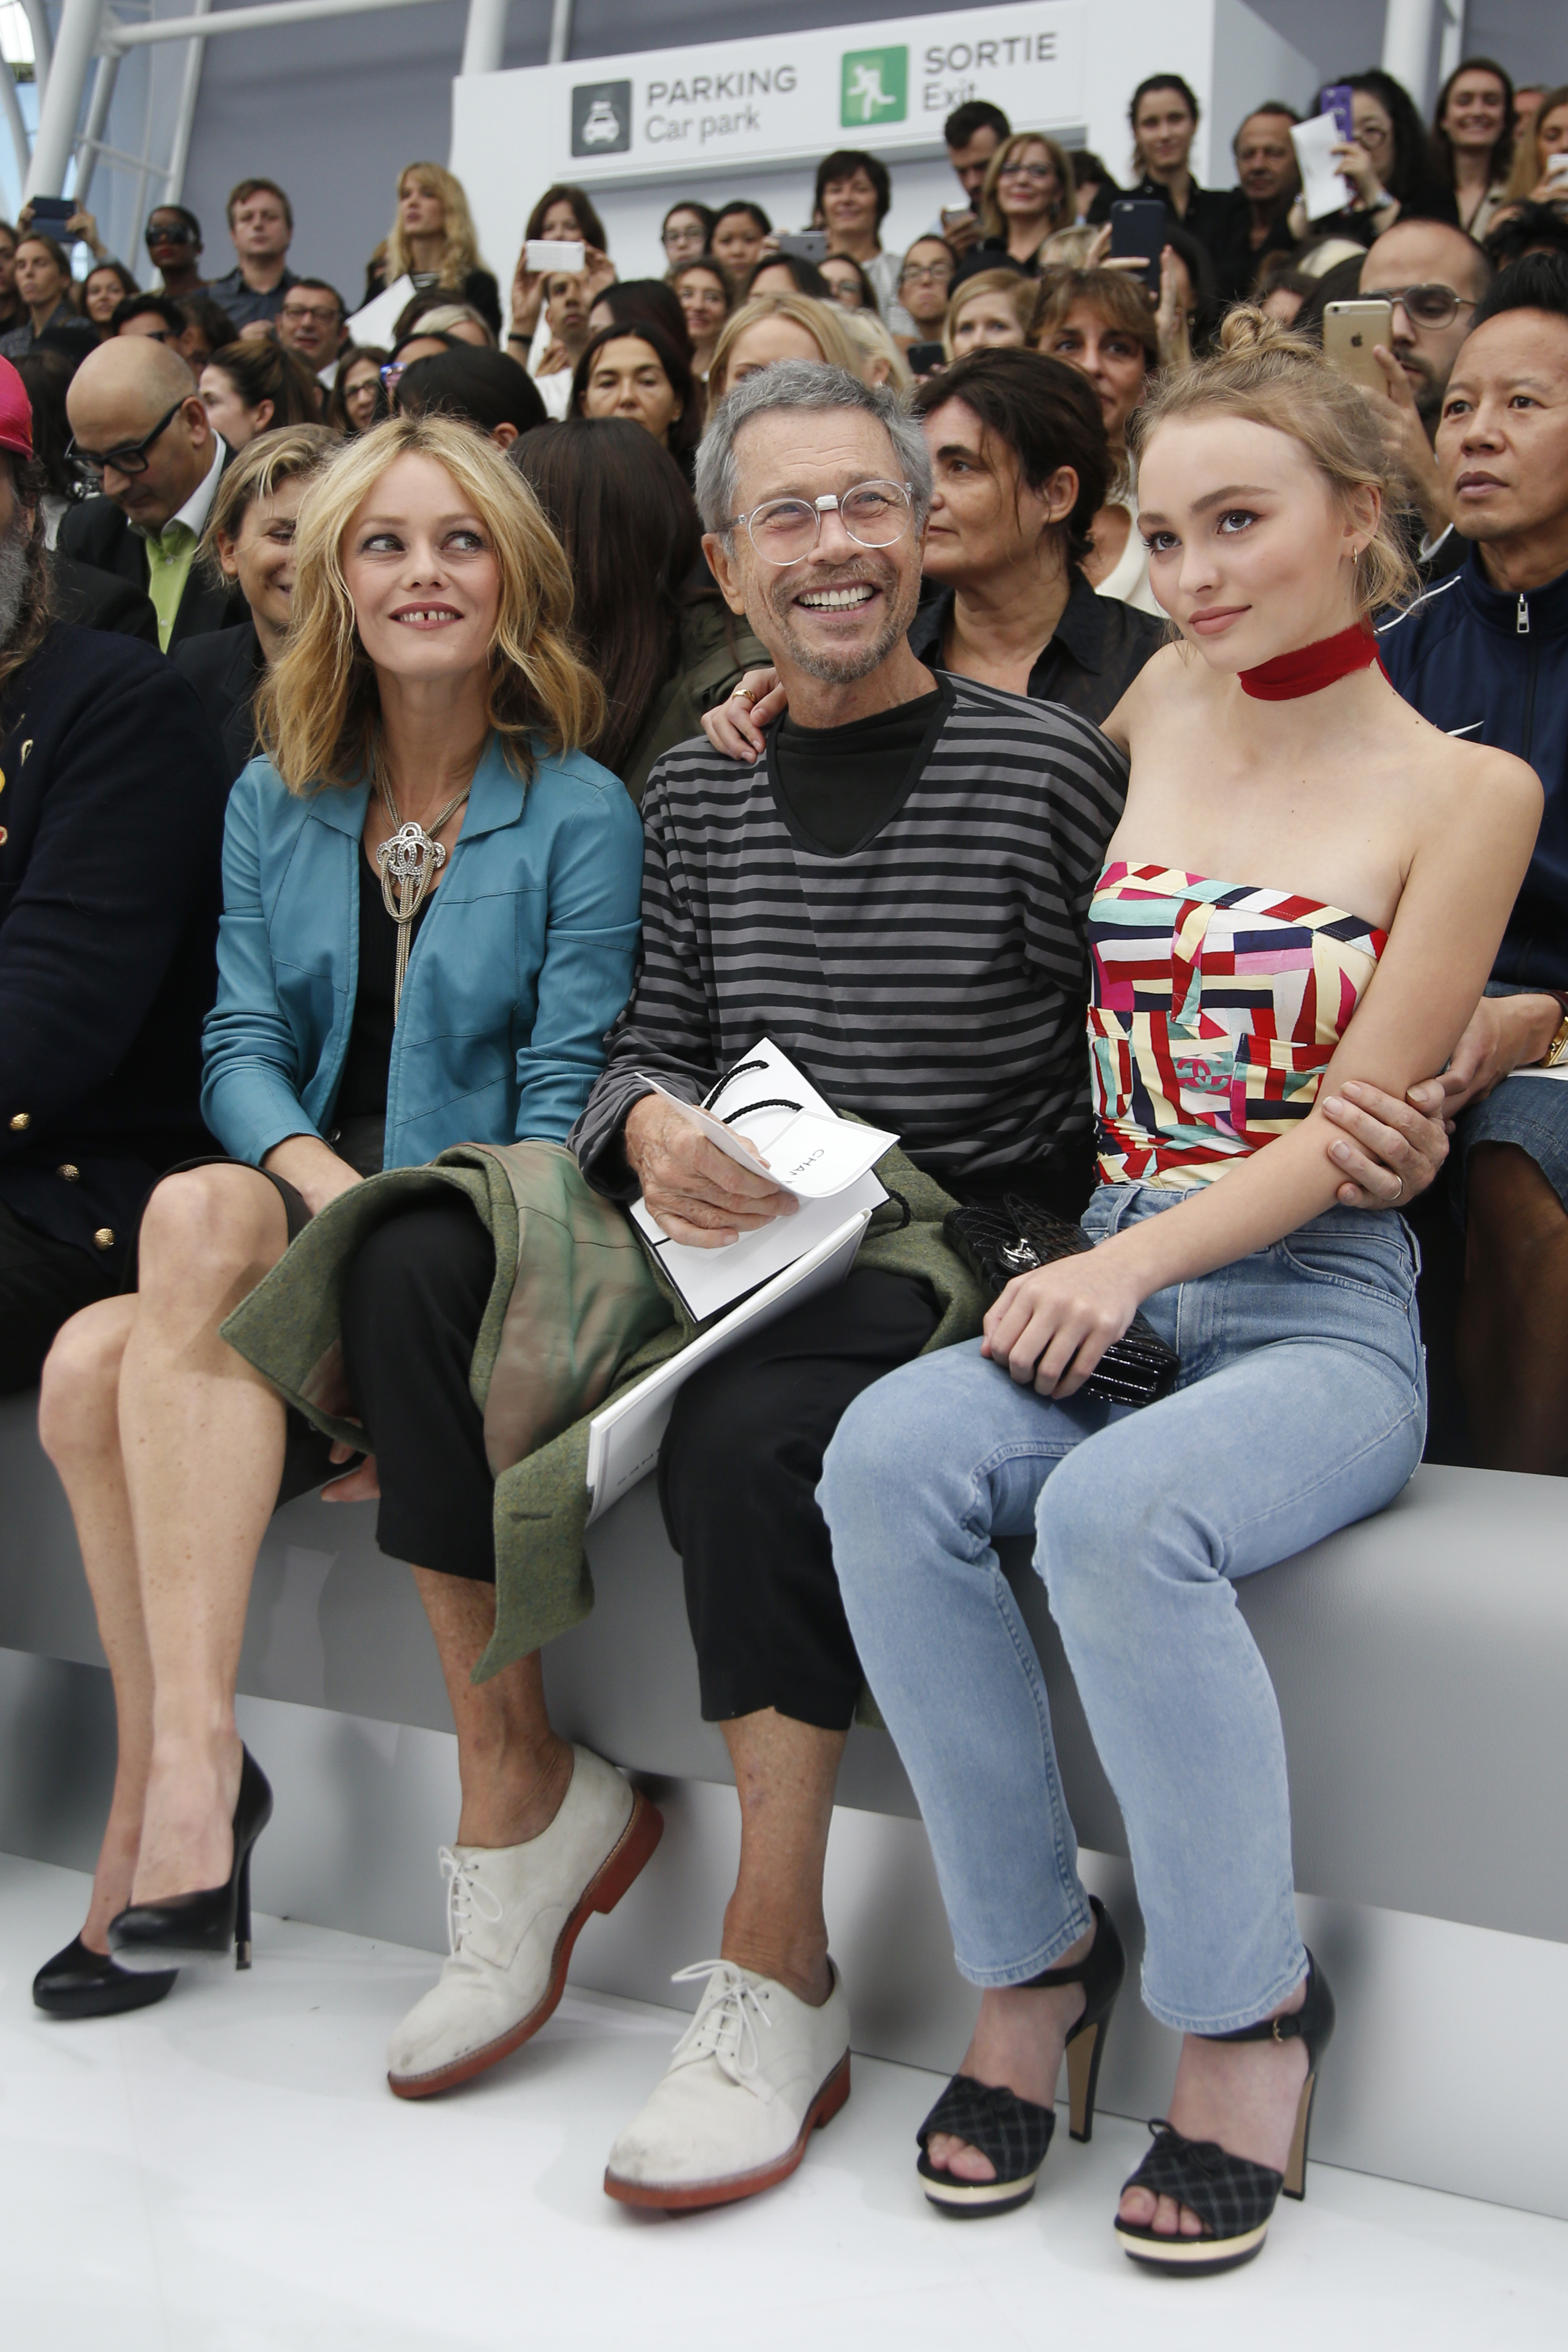 French singer Vanessa Paradis (L), her daughter Lily-Rose Depp (R) and French artist Jean-Paul Goude (C) attend the Spring/Summer 2016 women's ready-to-wear collection for fashion house Chanel at the Grand Palais which is transformed into a Chanel airport during the Fashion Week in Paris, France, October 6, 2015. REUTERS/Charles Platiau - RTS38C5